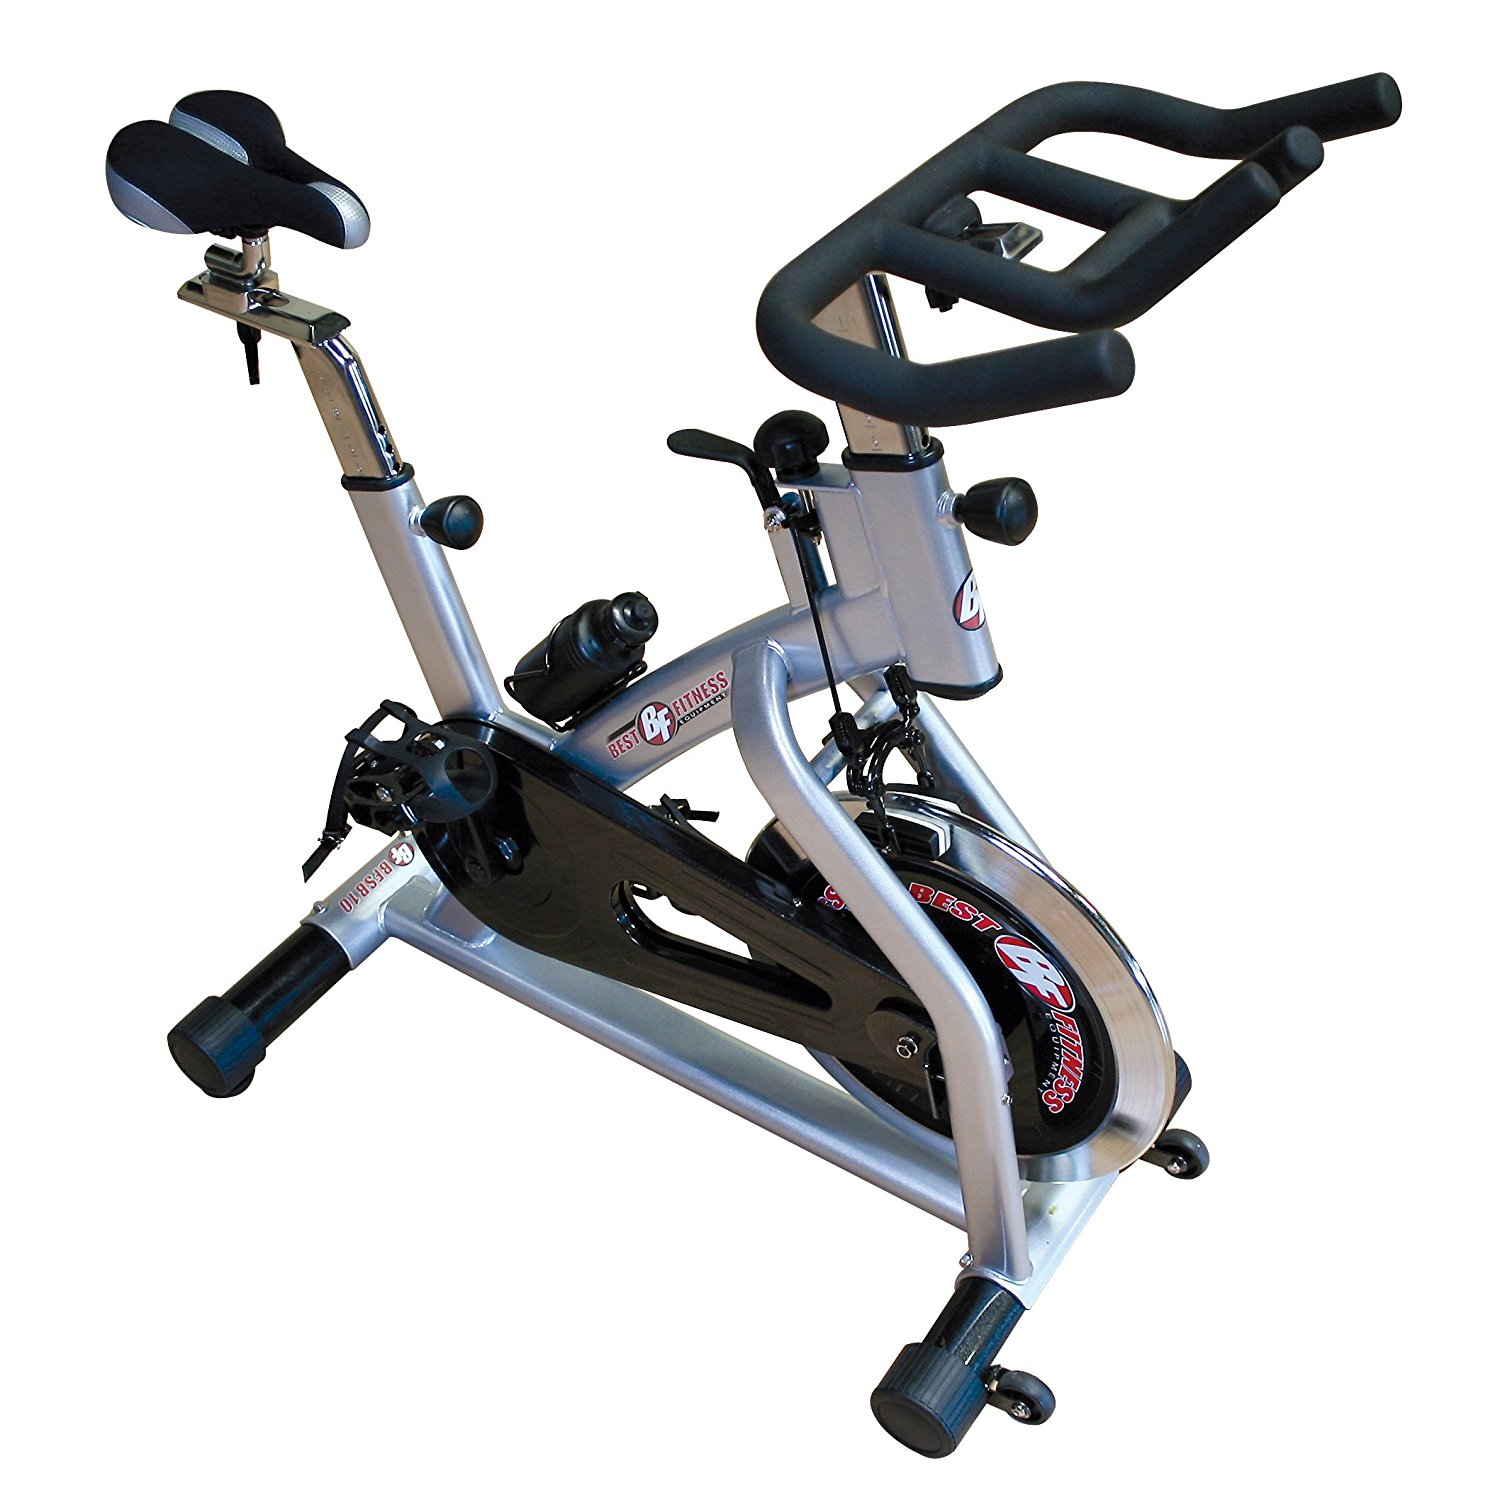 Best Fitness BFSB10 Indoor Cycling Trainer Reviews